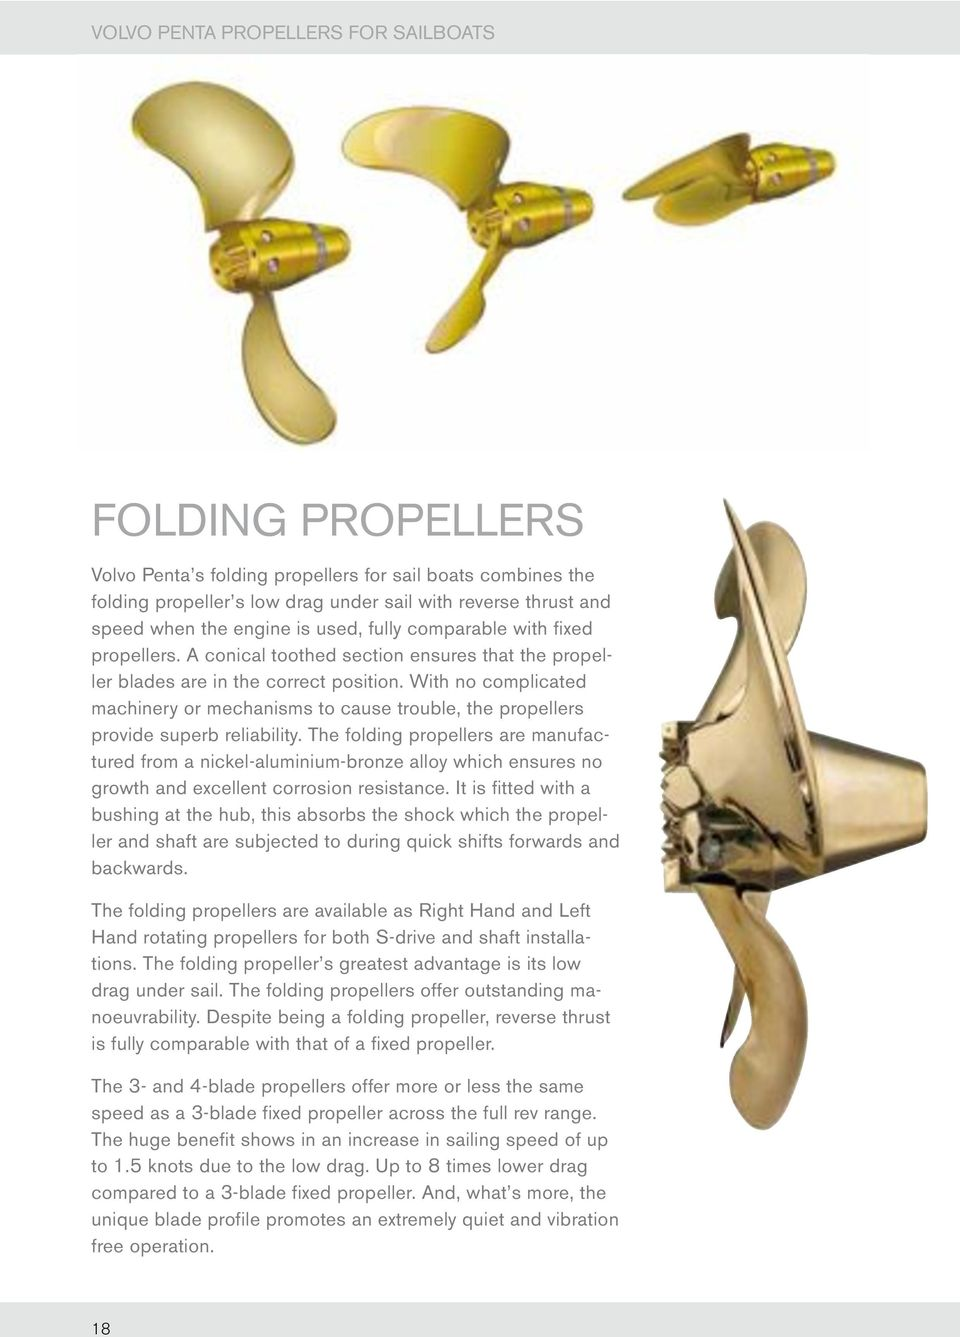 With no complicated machinery or mechanisms to cause trouble, the propellers provide superb reliability.